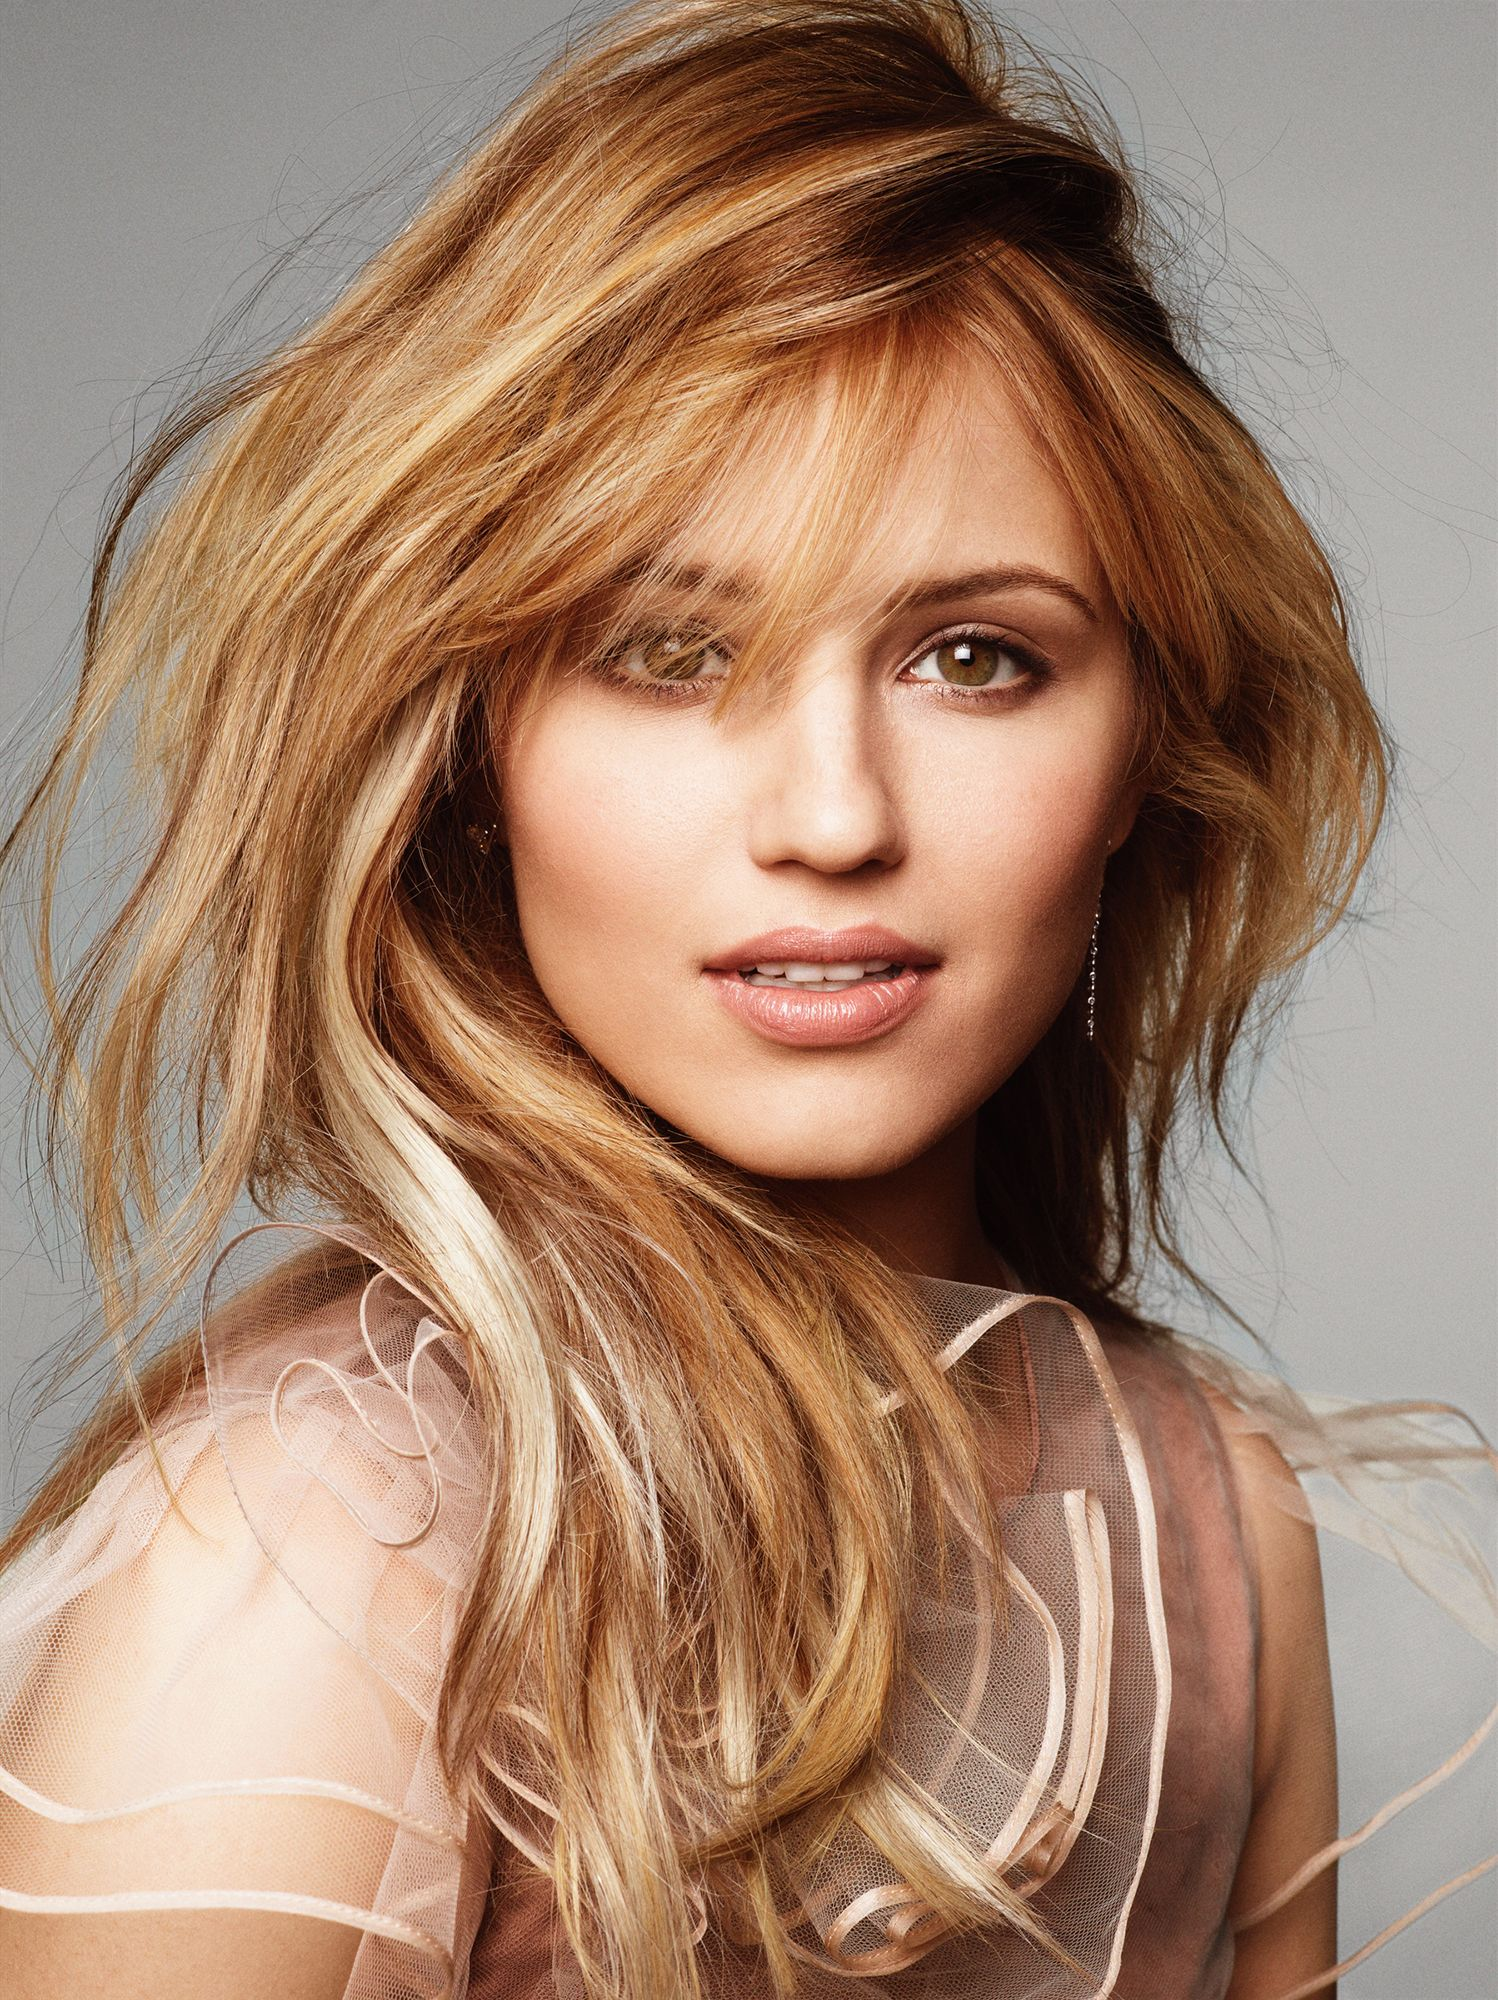 Dianna Agron Dianna Was Chosen By People Magazine To Be One Of